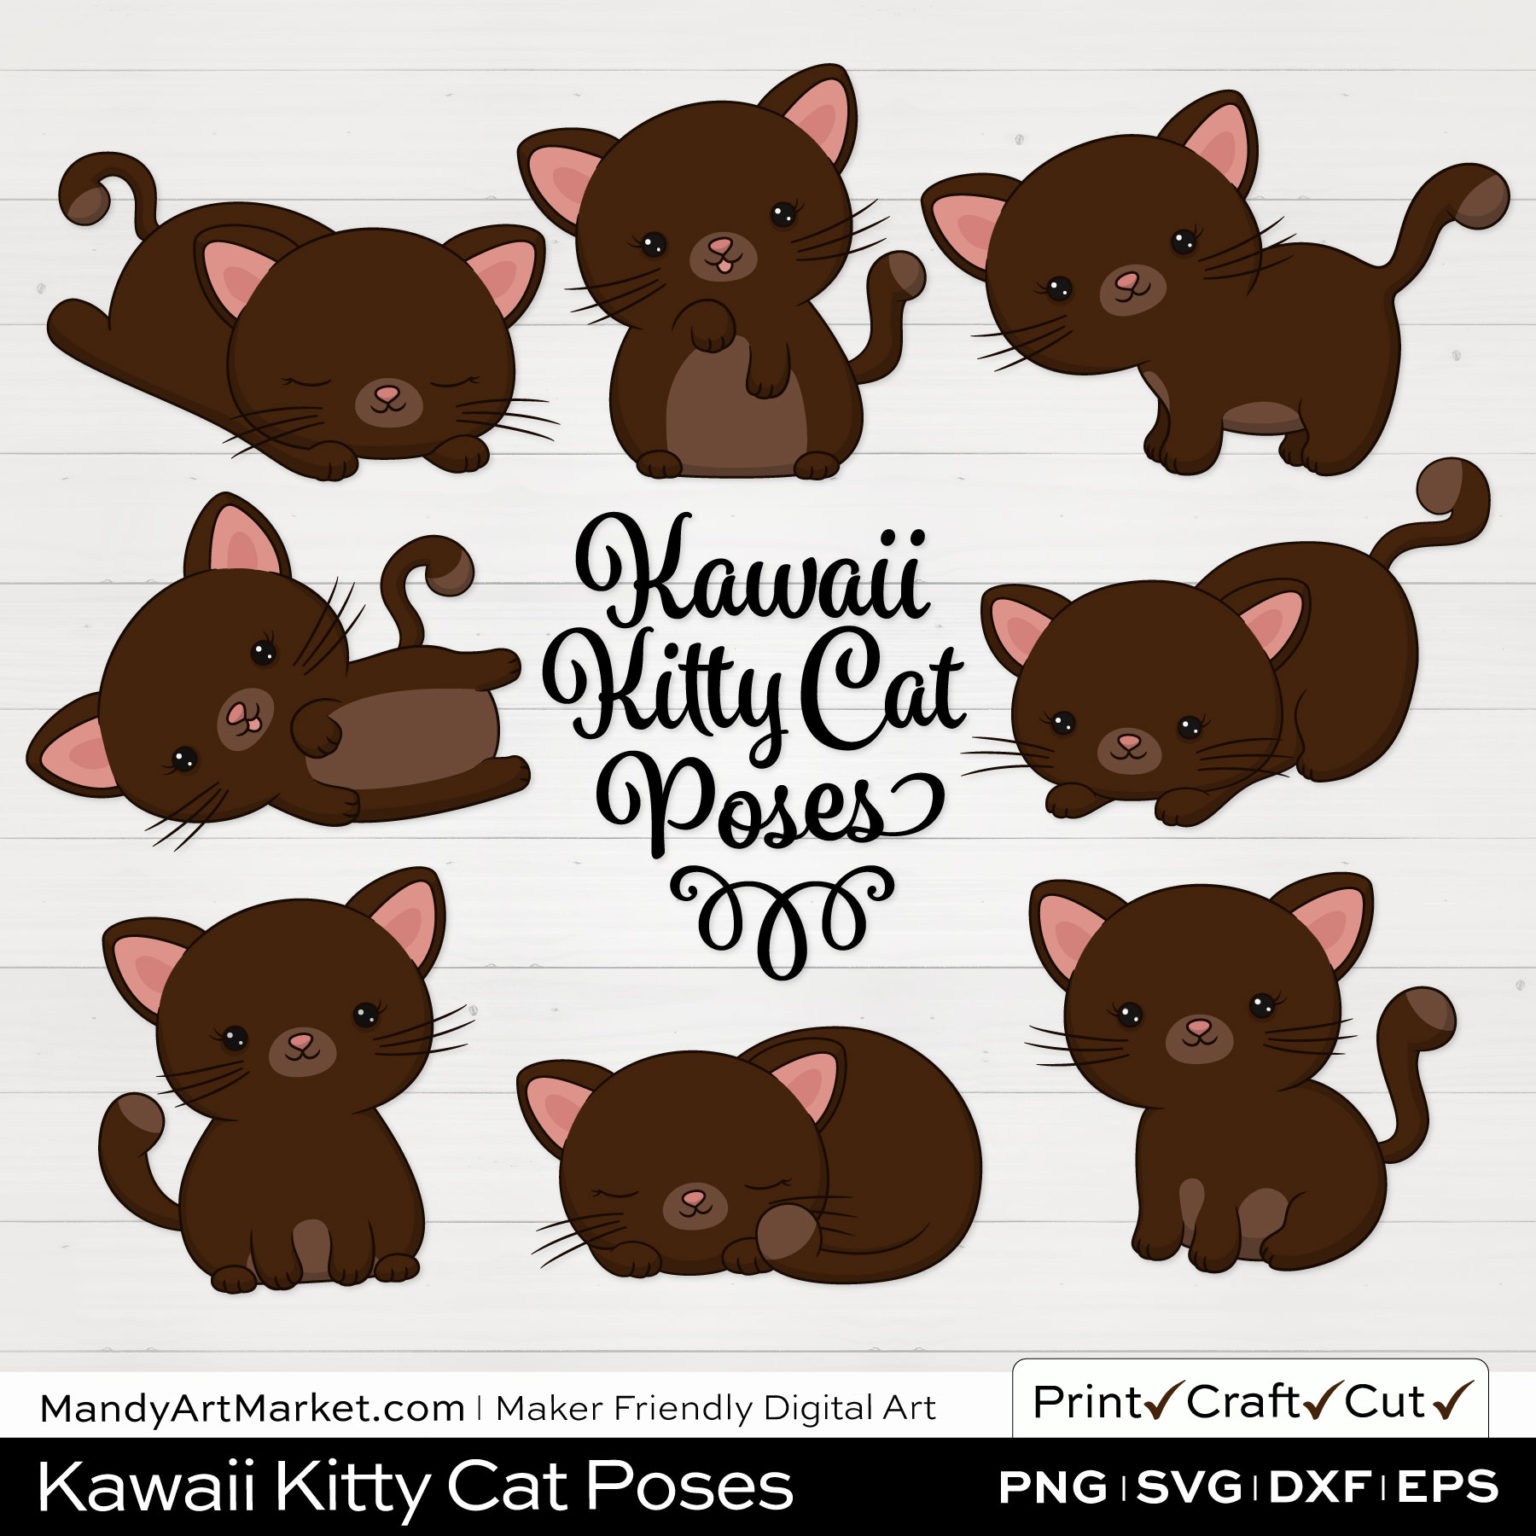 Chocolate Brown Kawaii Kitty Cat Poses Clipart on White Background